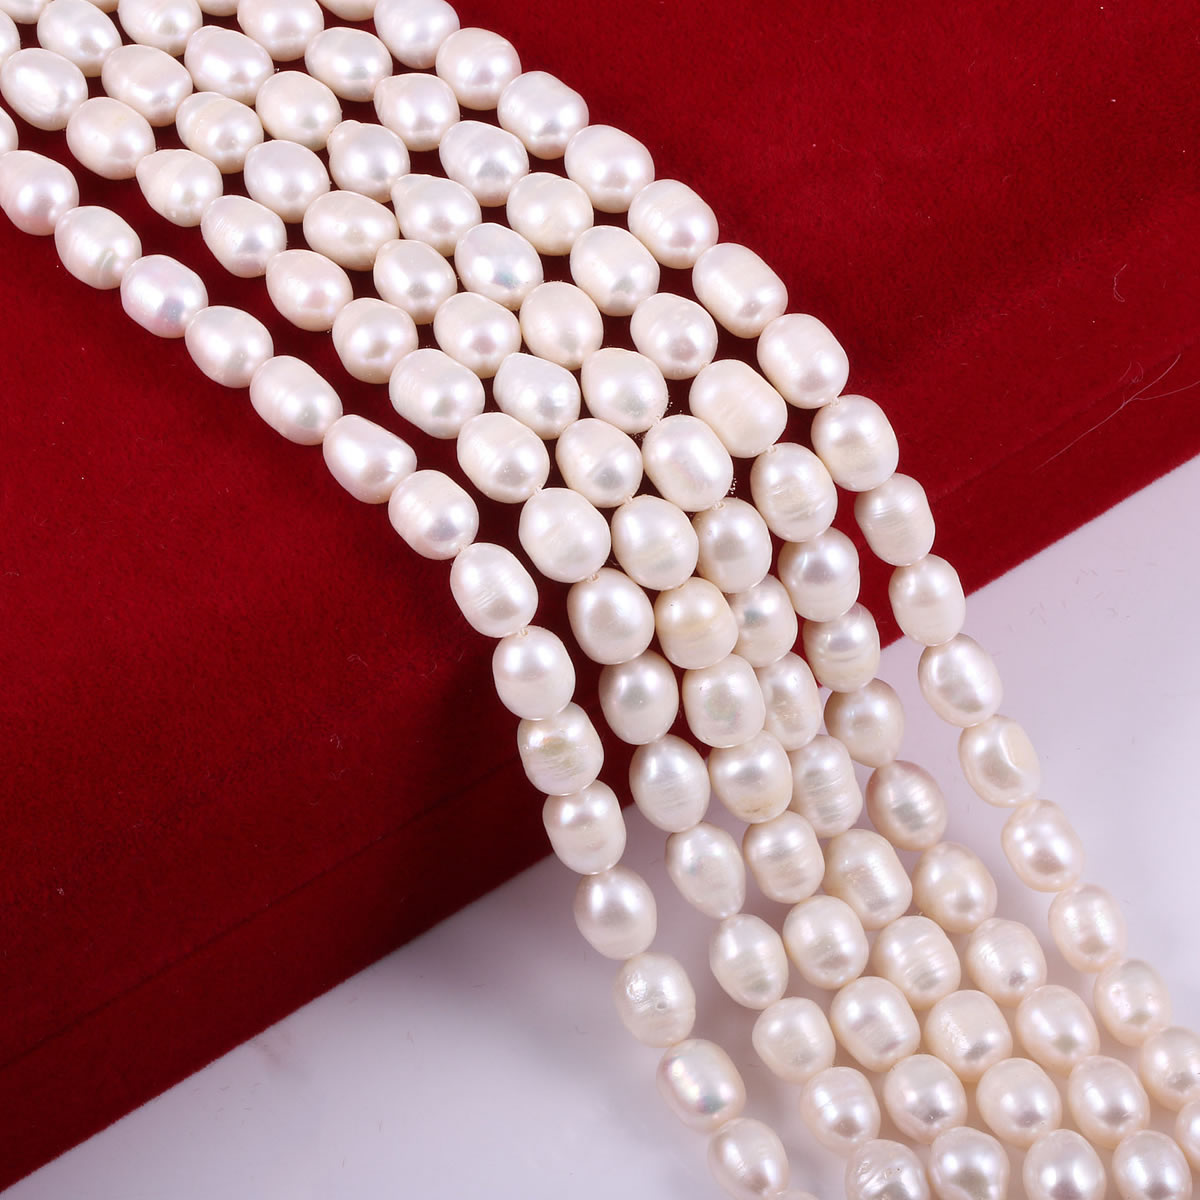 Fine 100% Natural Freshwater Pearl Rice Shape Punch Loose Beads For Jewelry Making DIY Charm Bracelet Necklace Accessories Gifts  - buy with discount